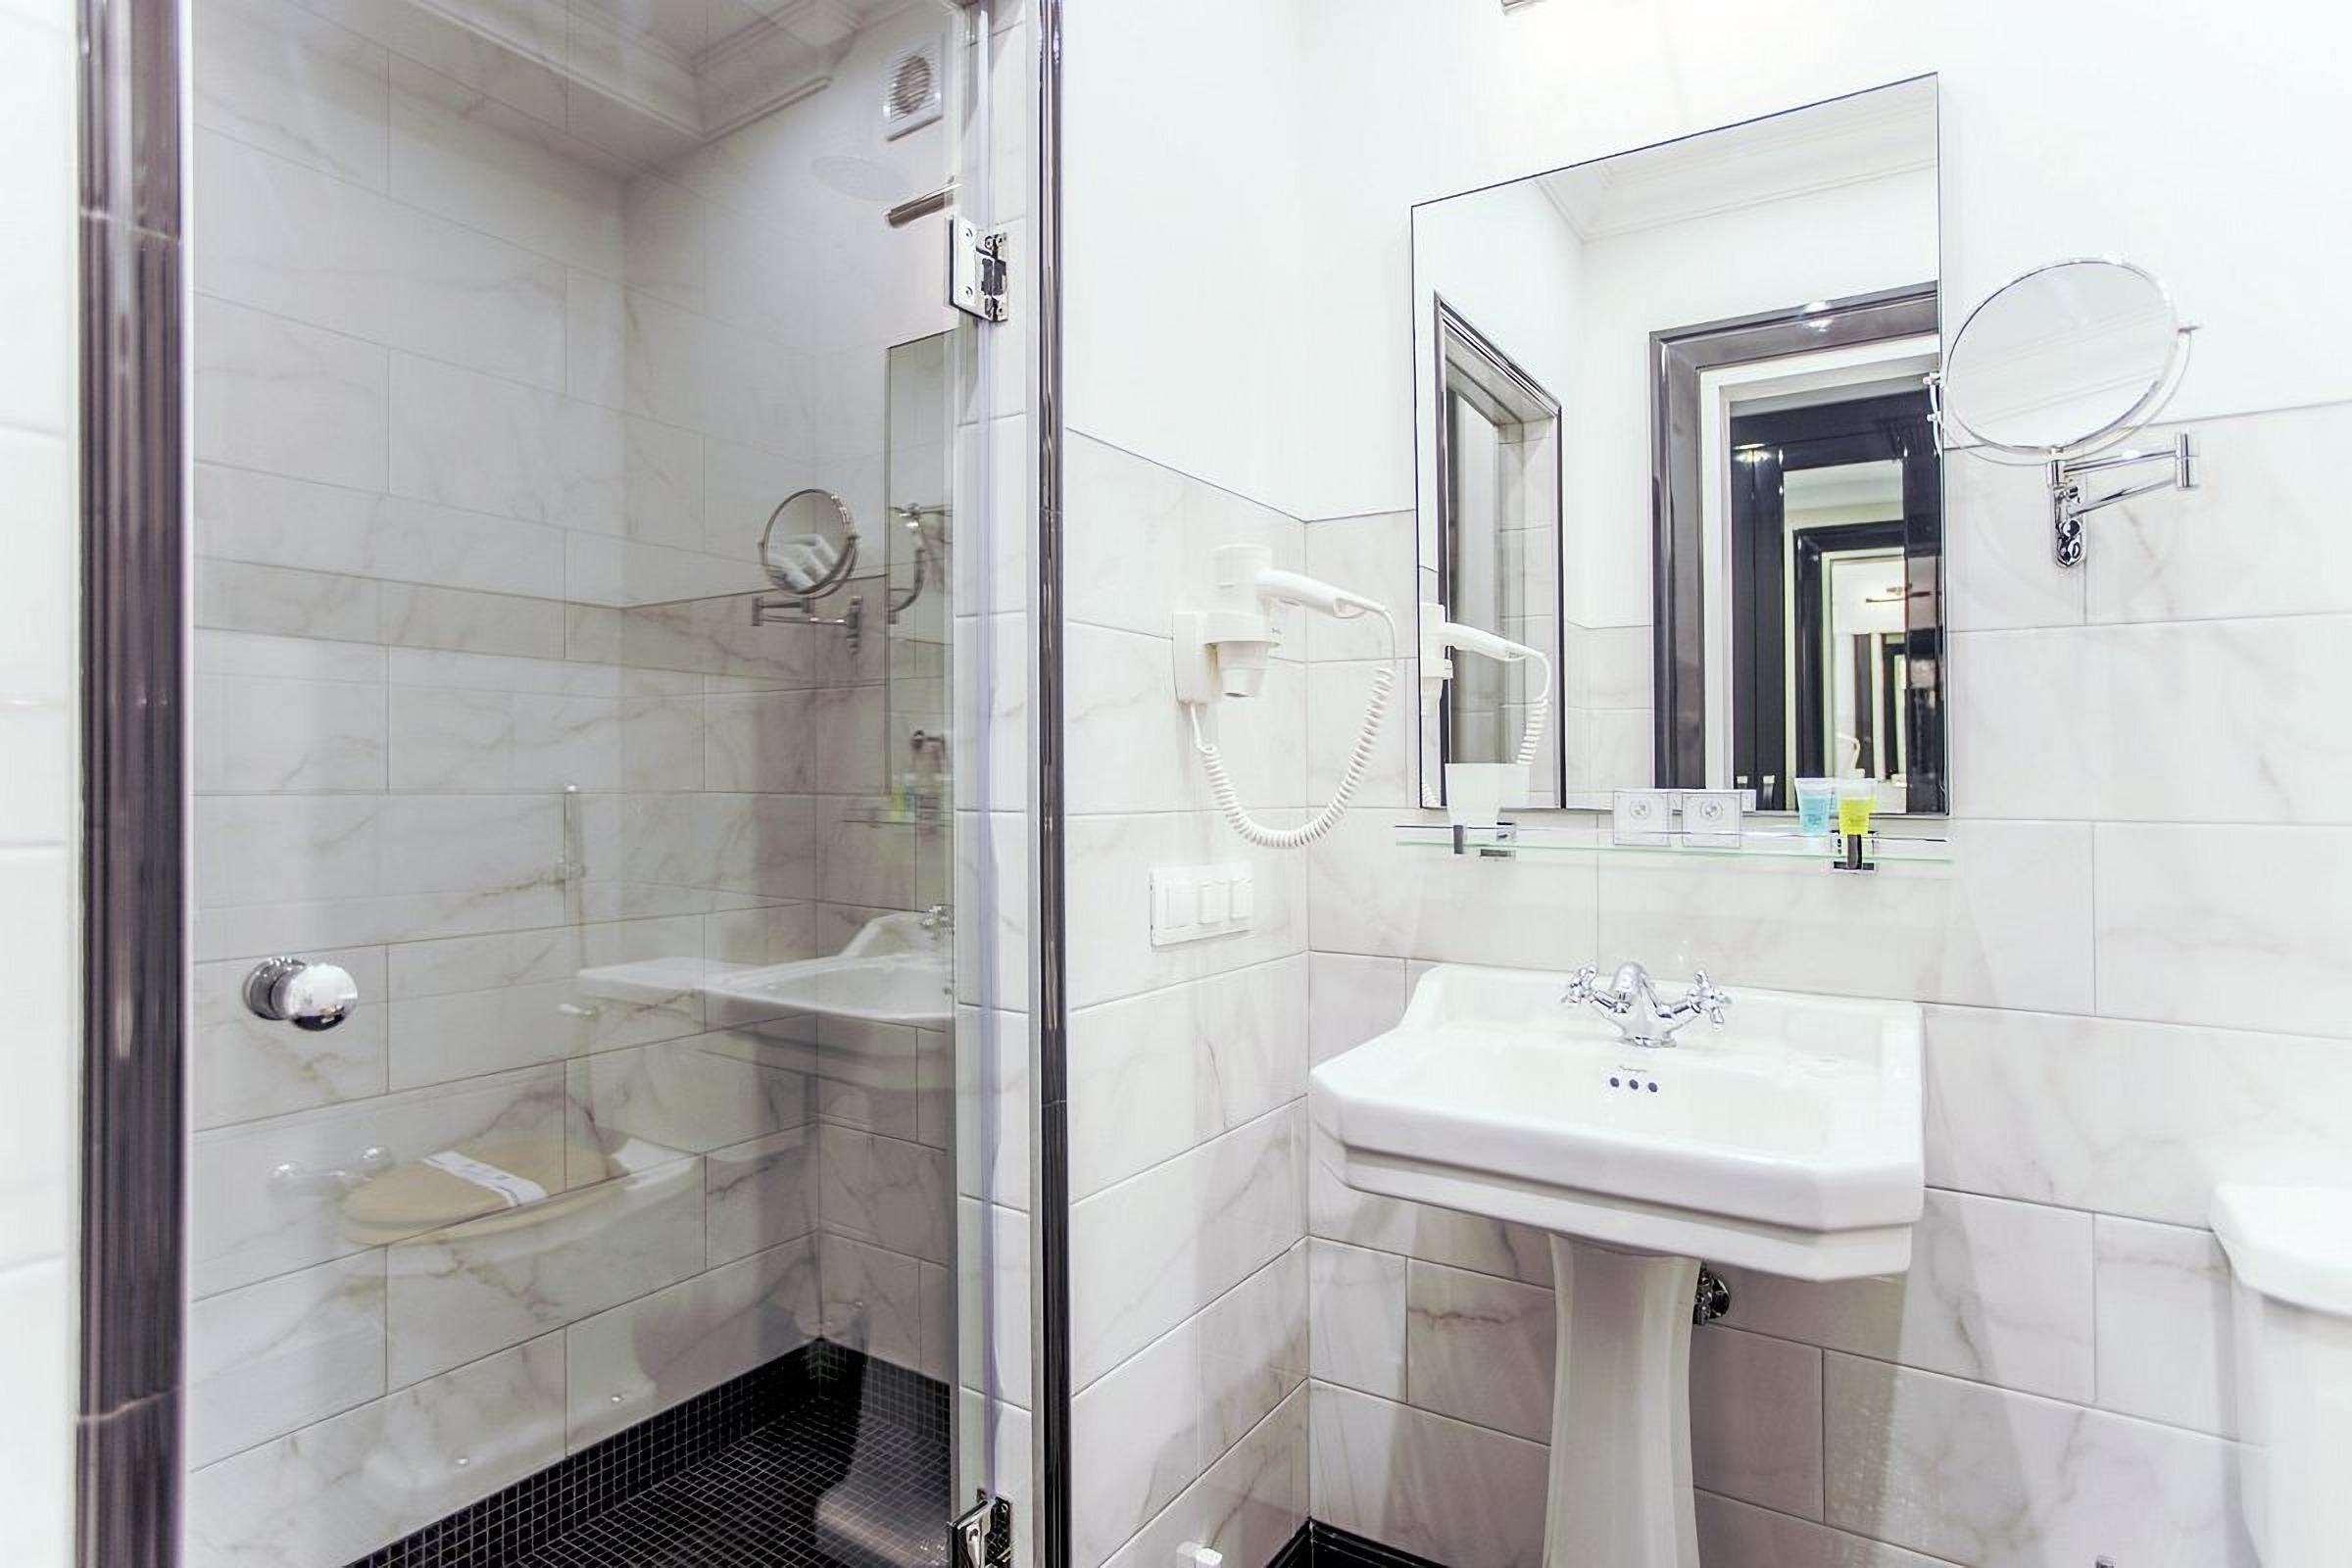 Shower cabin in a room at the Wall Street Hotel Odessa